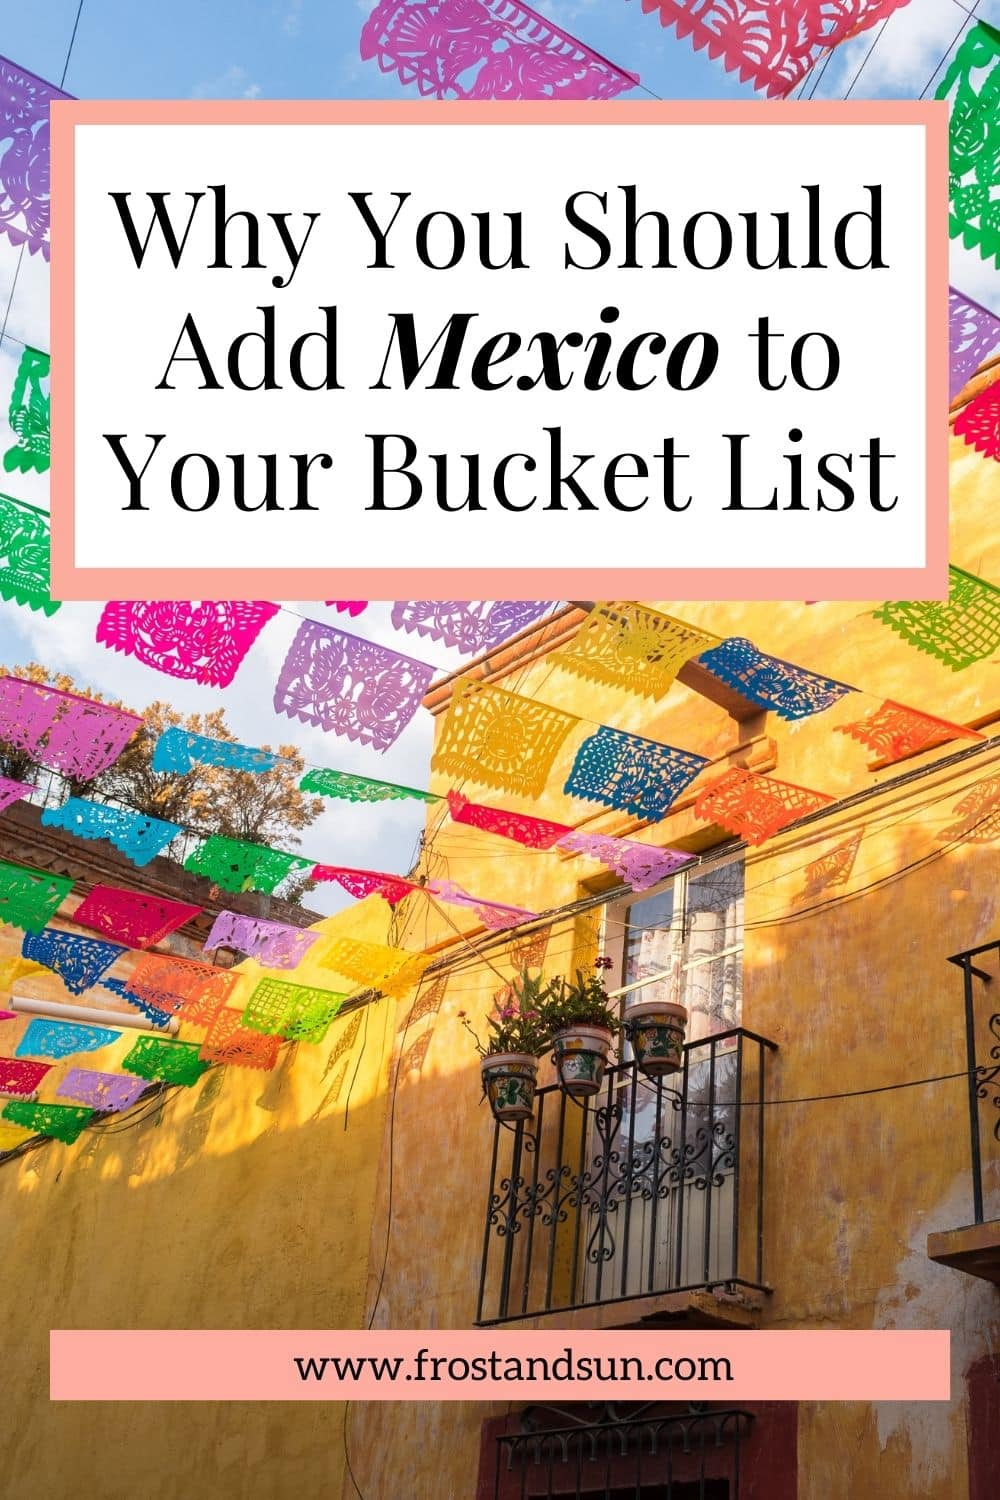 10 Reasons to Visit Mexico on Your Next Vacation